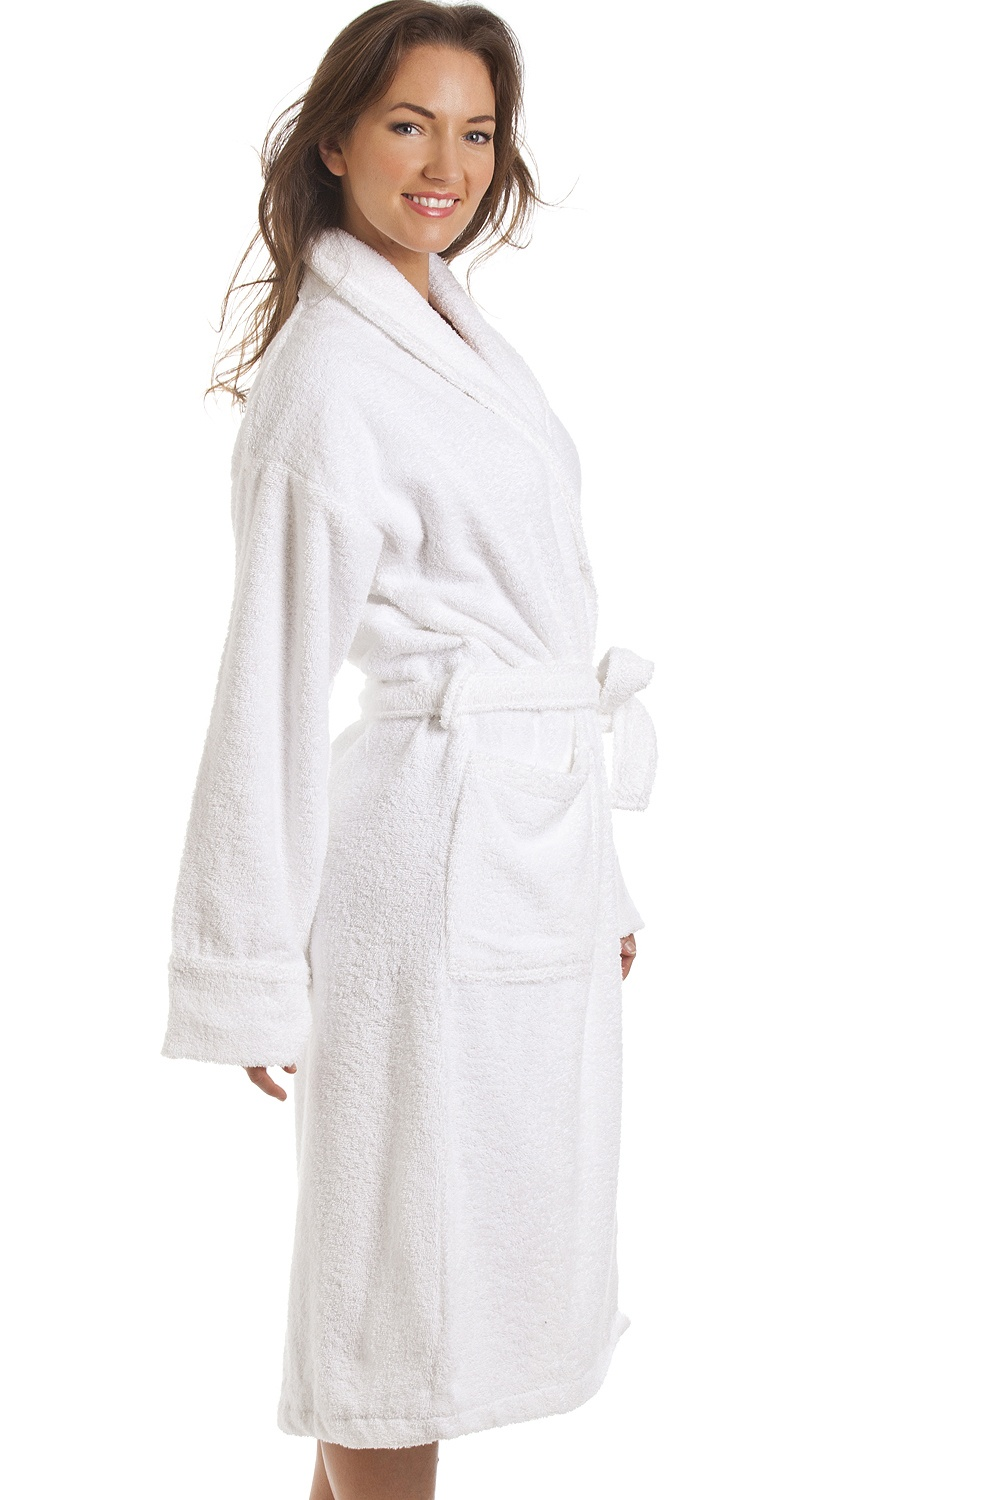 Womens white towelling bath robe for Luxury women